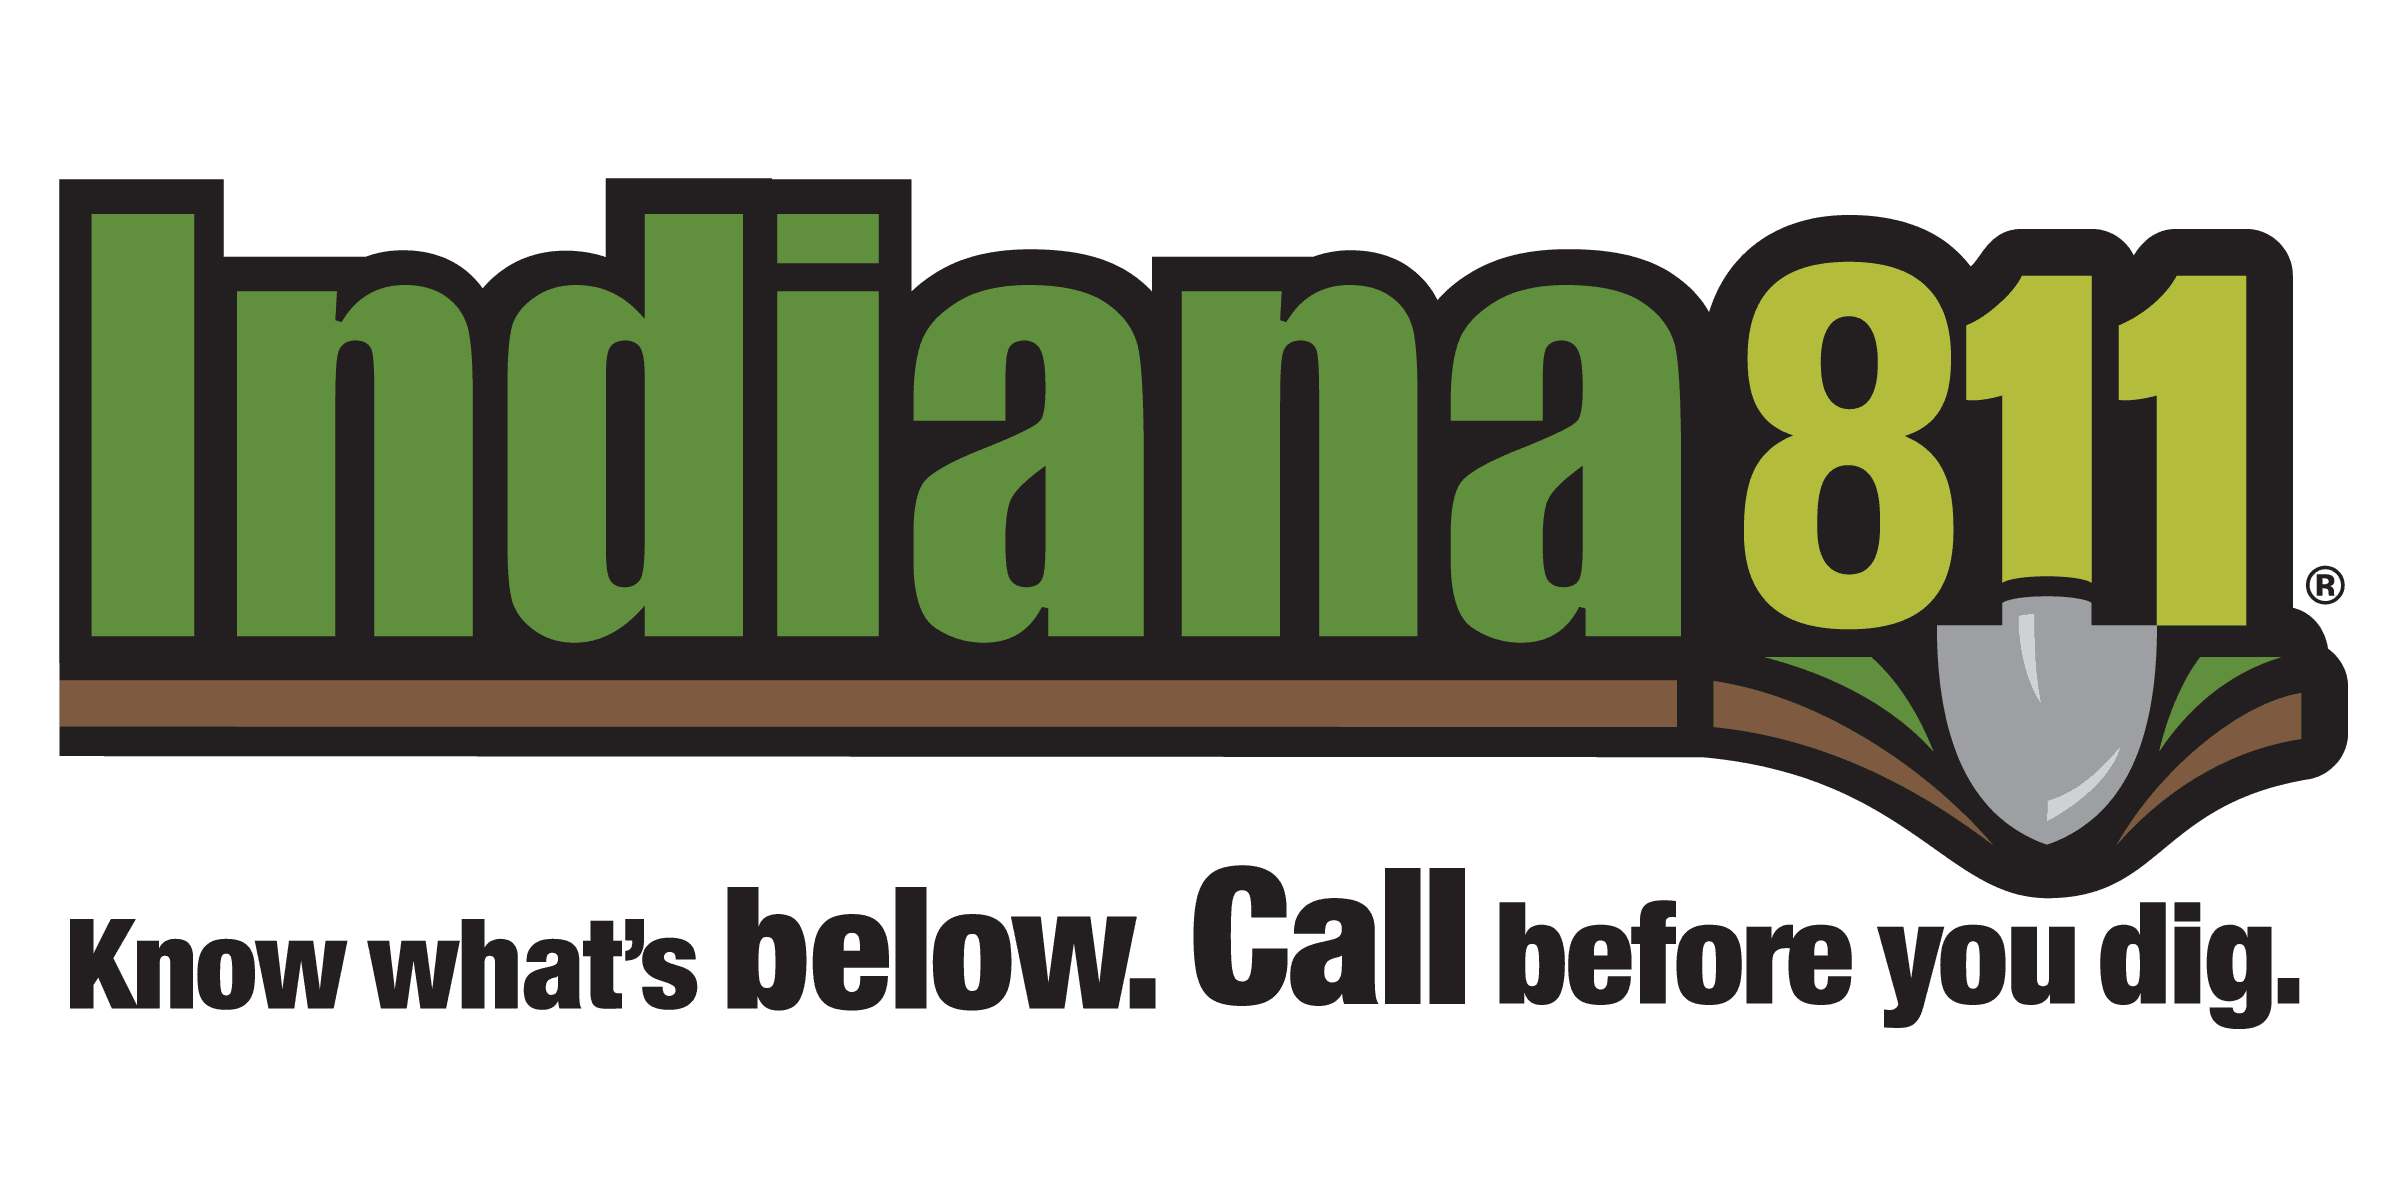 https://silvercreekwater.org/wp-content/uploads/2021/09/indiana-811-final.png